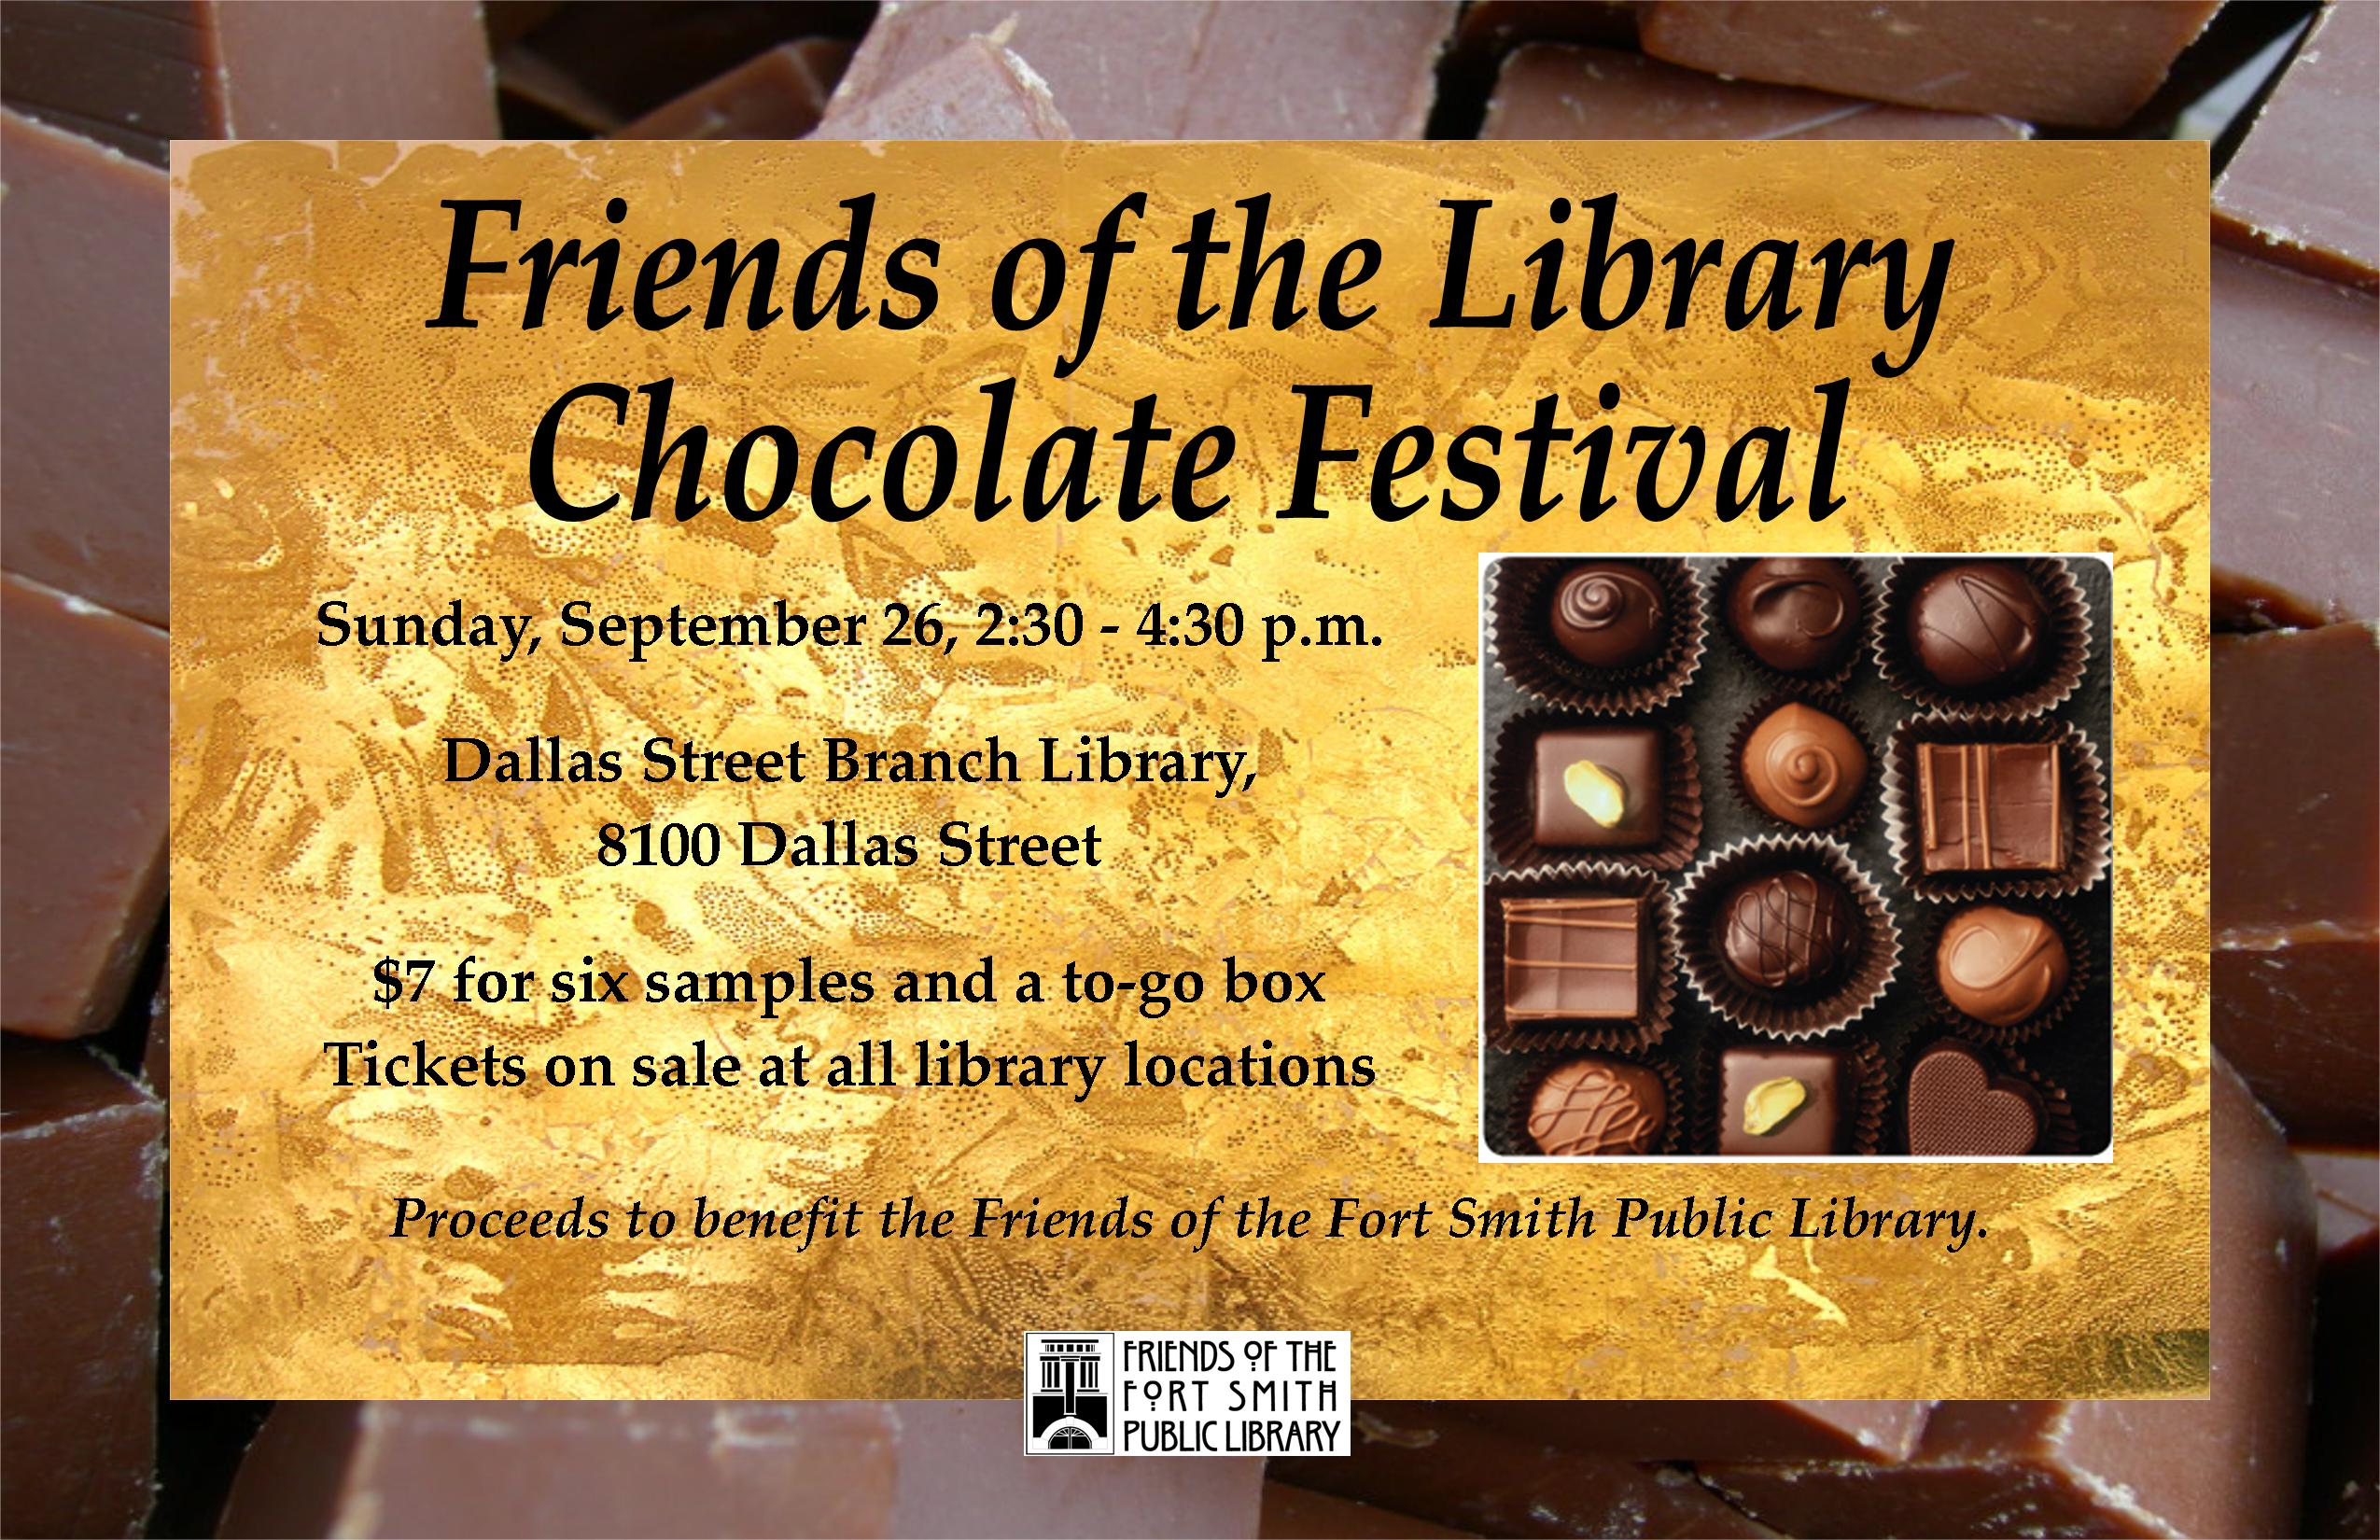 Chocolate Festival Poster 2021